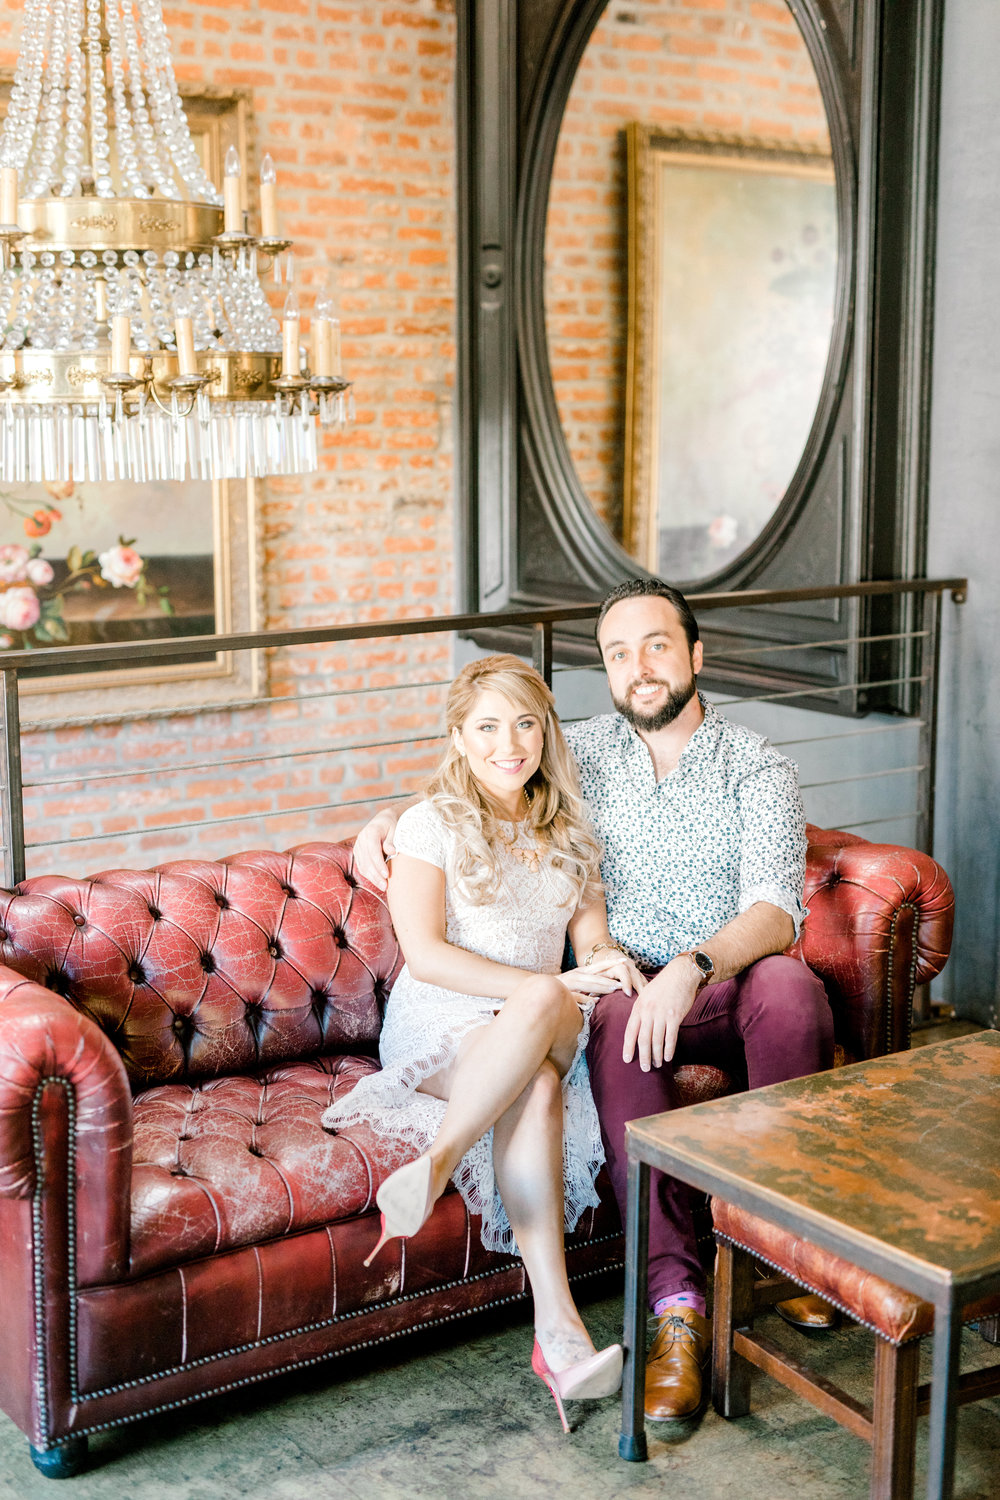 Cozied up on the couch for their romantic fall engagement session at the Revolution House in Old City, Philadelphia.